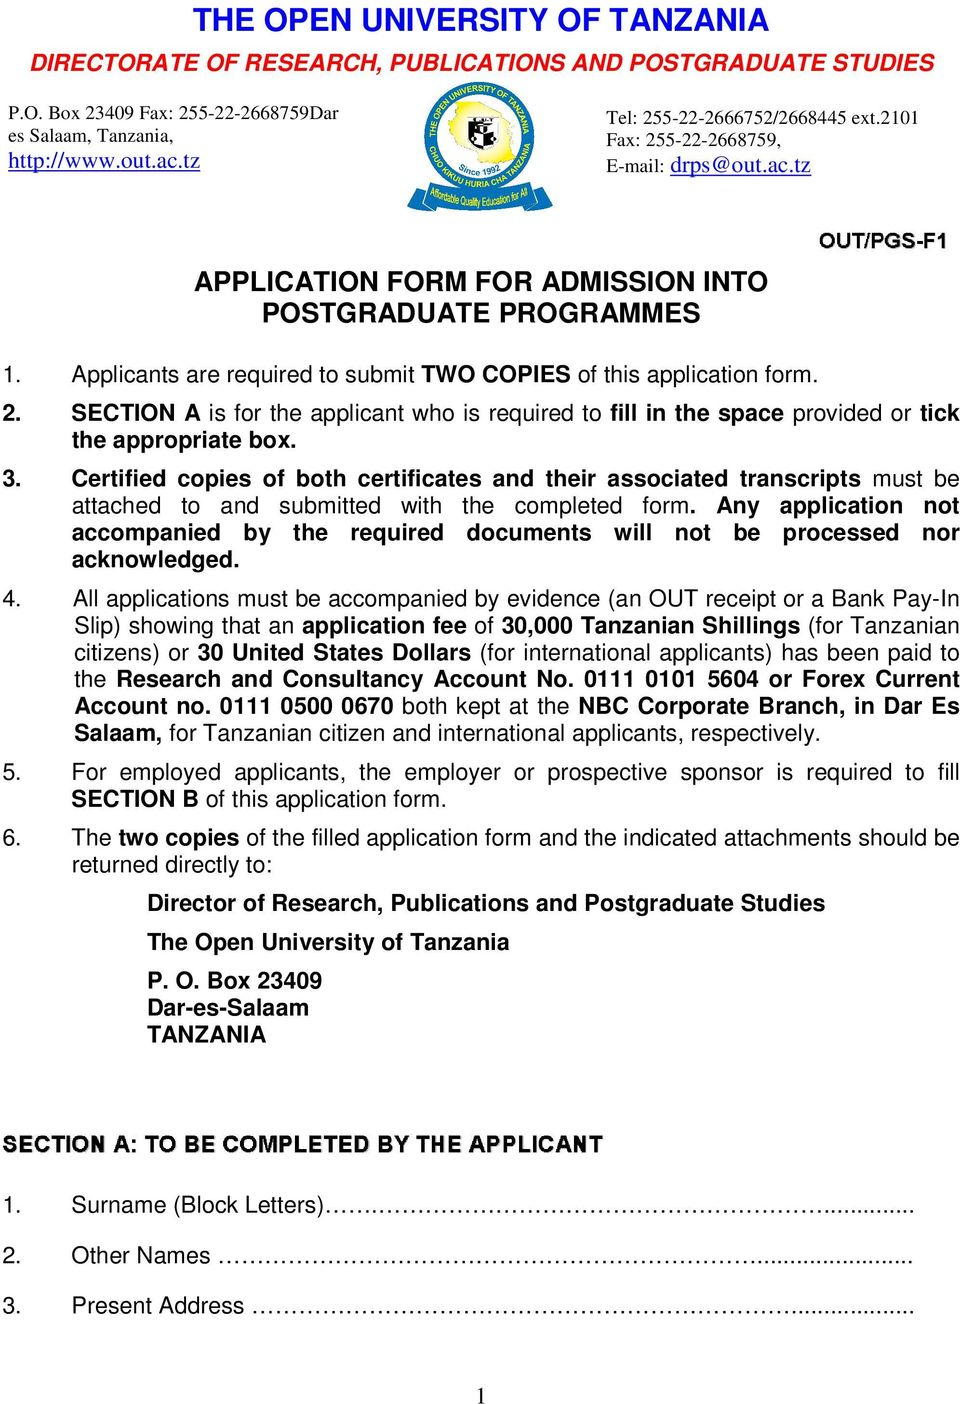 Applicants are required to submit TWO COPIES of this application form. 2. SECTION A is for the applicant who is required to fill in the space provided or tick the appropriate box. 3.